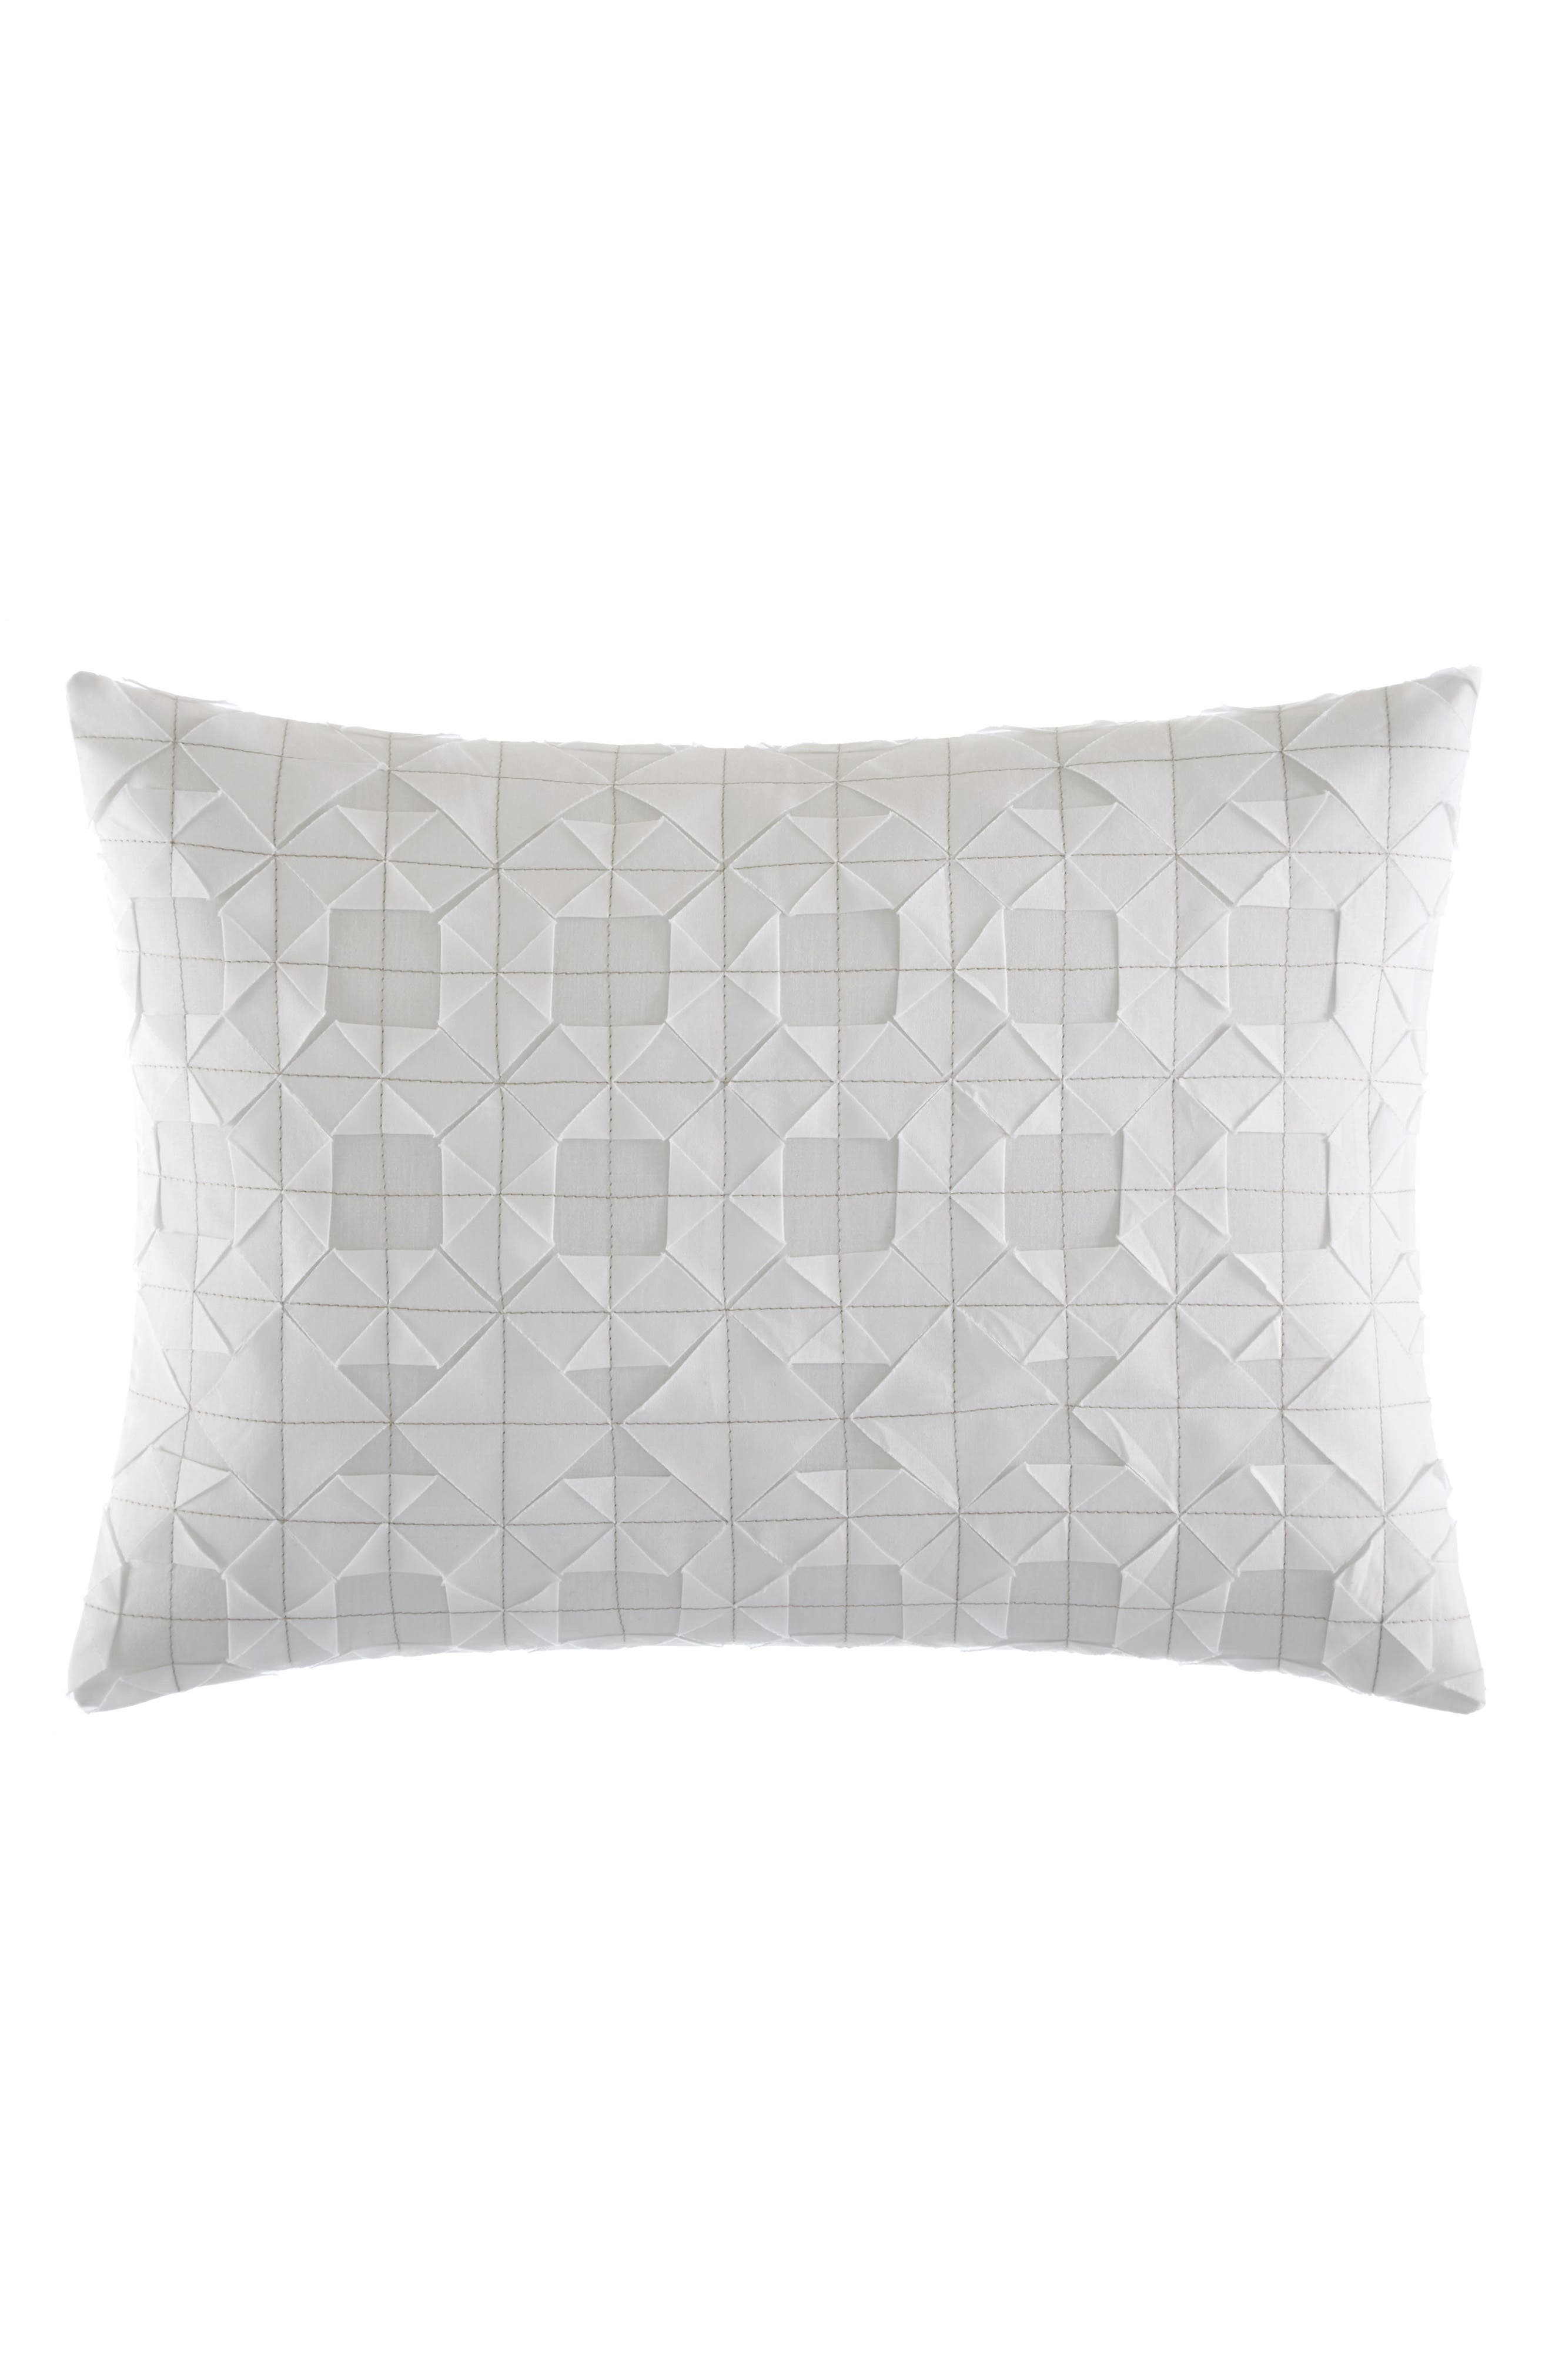 Tuille Origami Stitched Accent Pillow,                         Main,                         color, WHITE